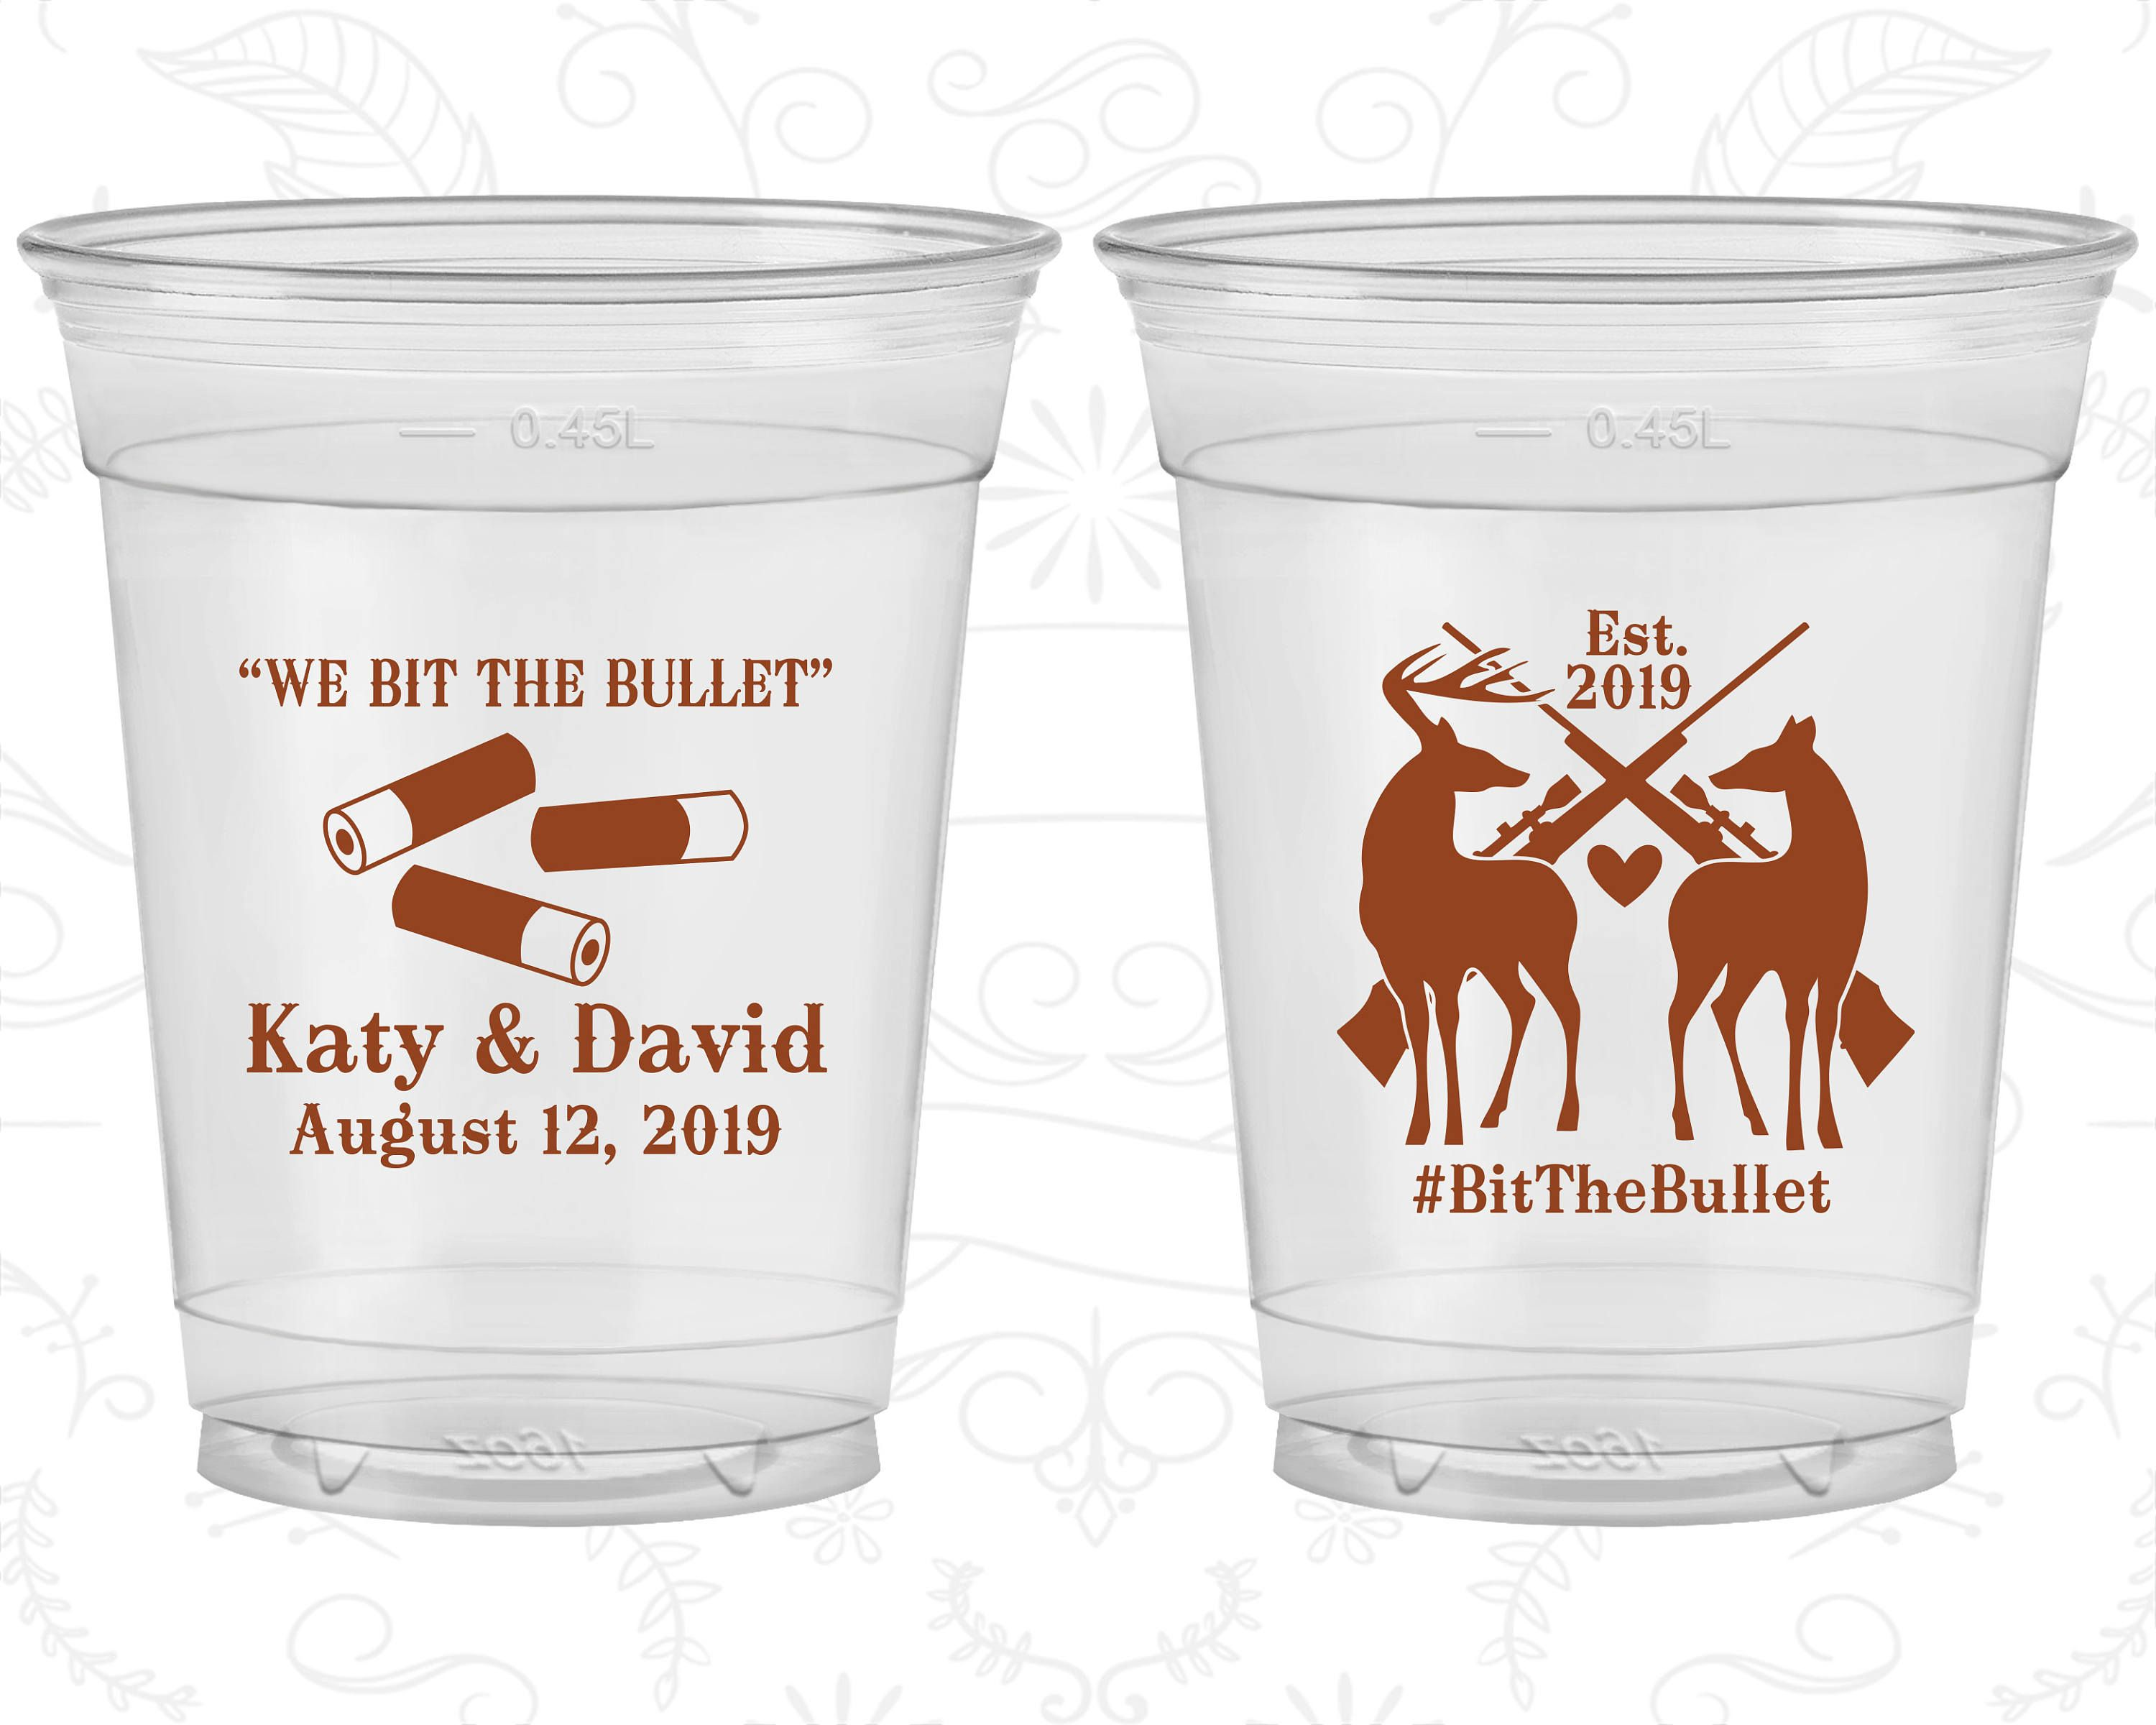 We Bit the Bullet, Promotional Soft Sided Cups, Hunting Wedding, Hunter Wedding, Deer Wedding, Clear Cups (407)